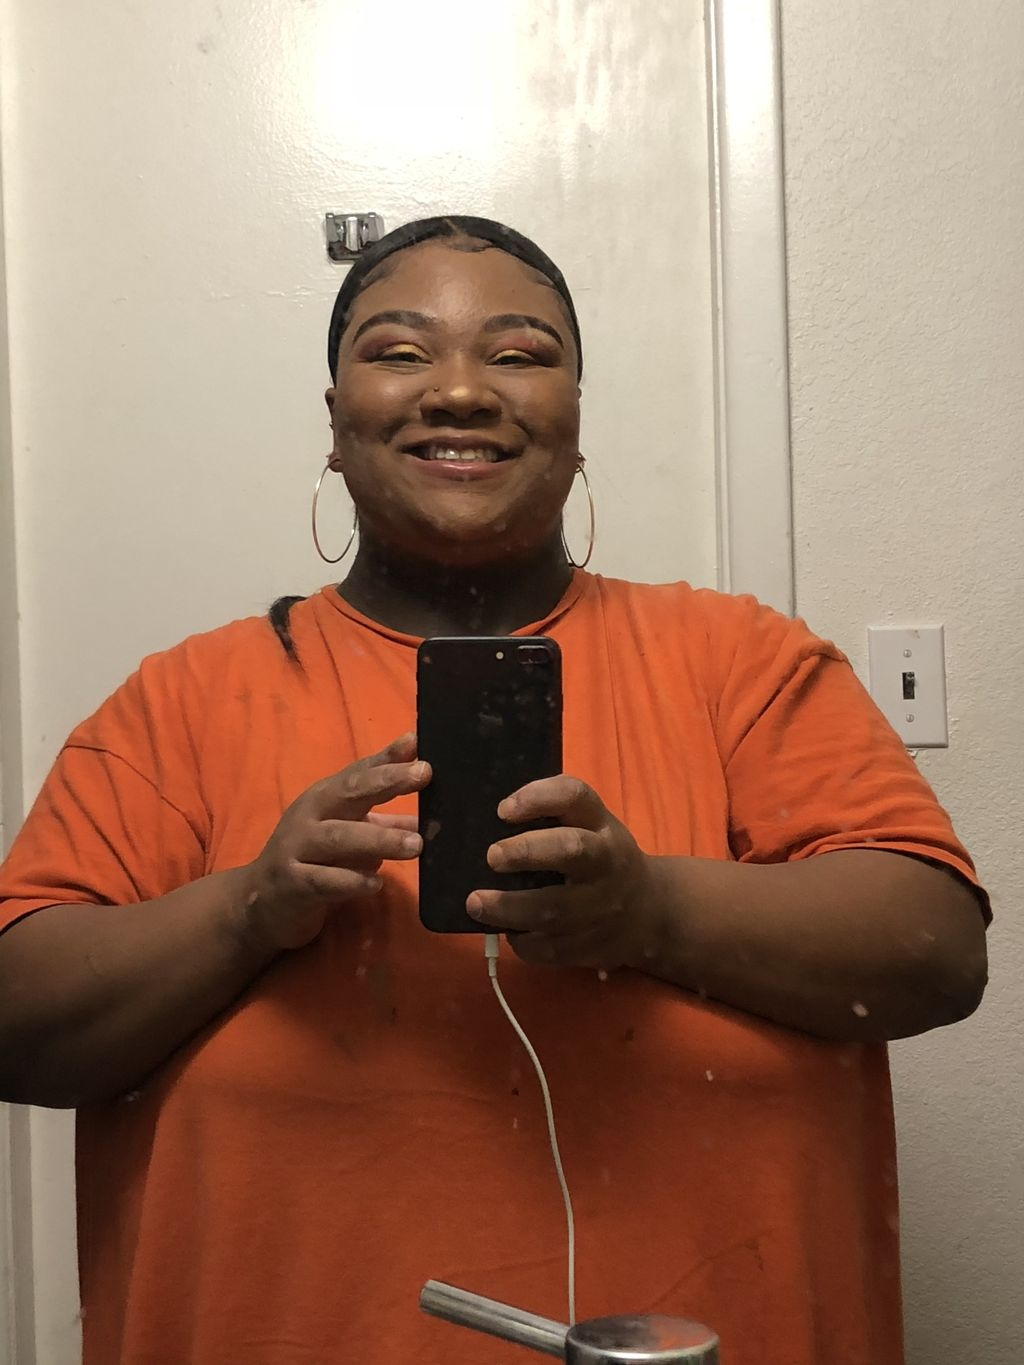 Asia clifton 350 lbs to 220lbs in 1 year